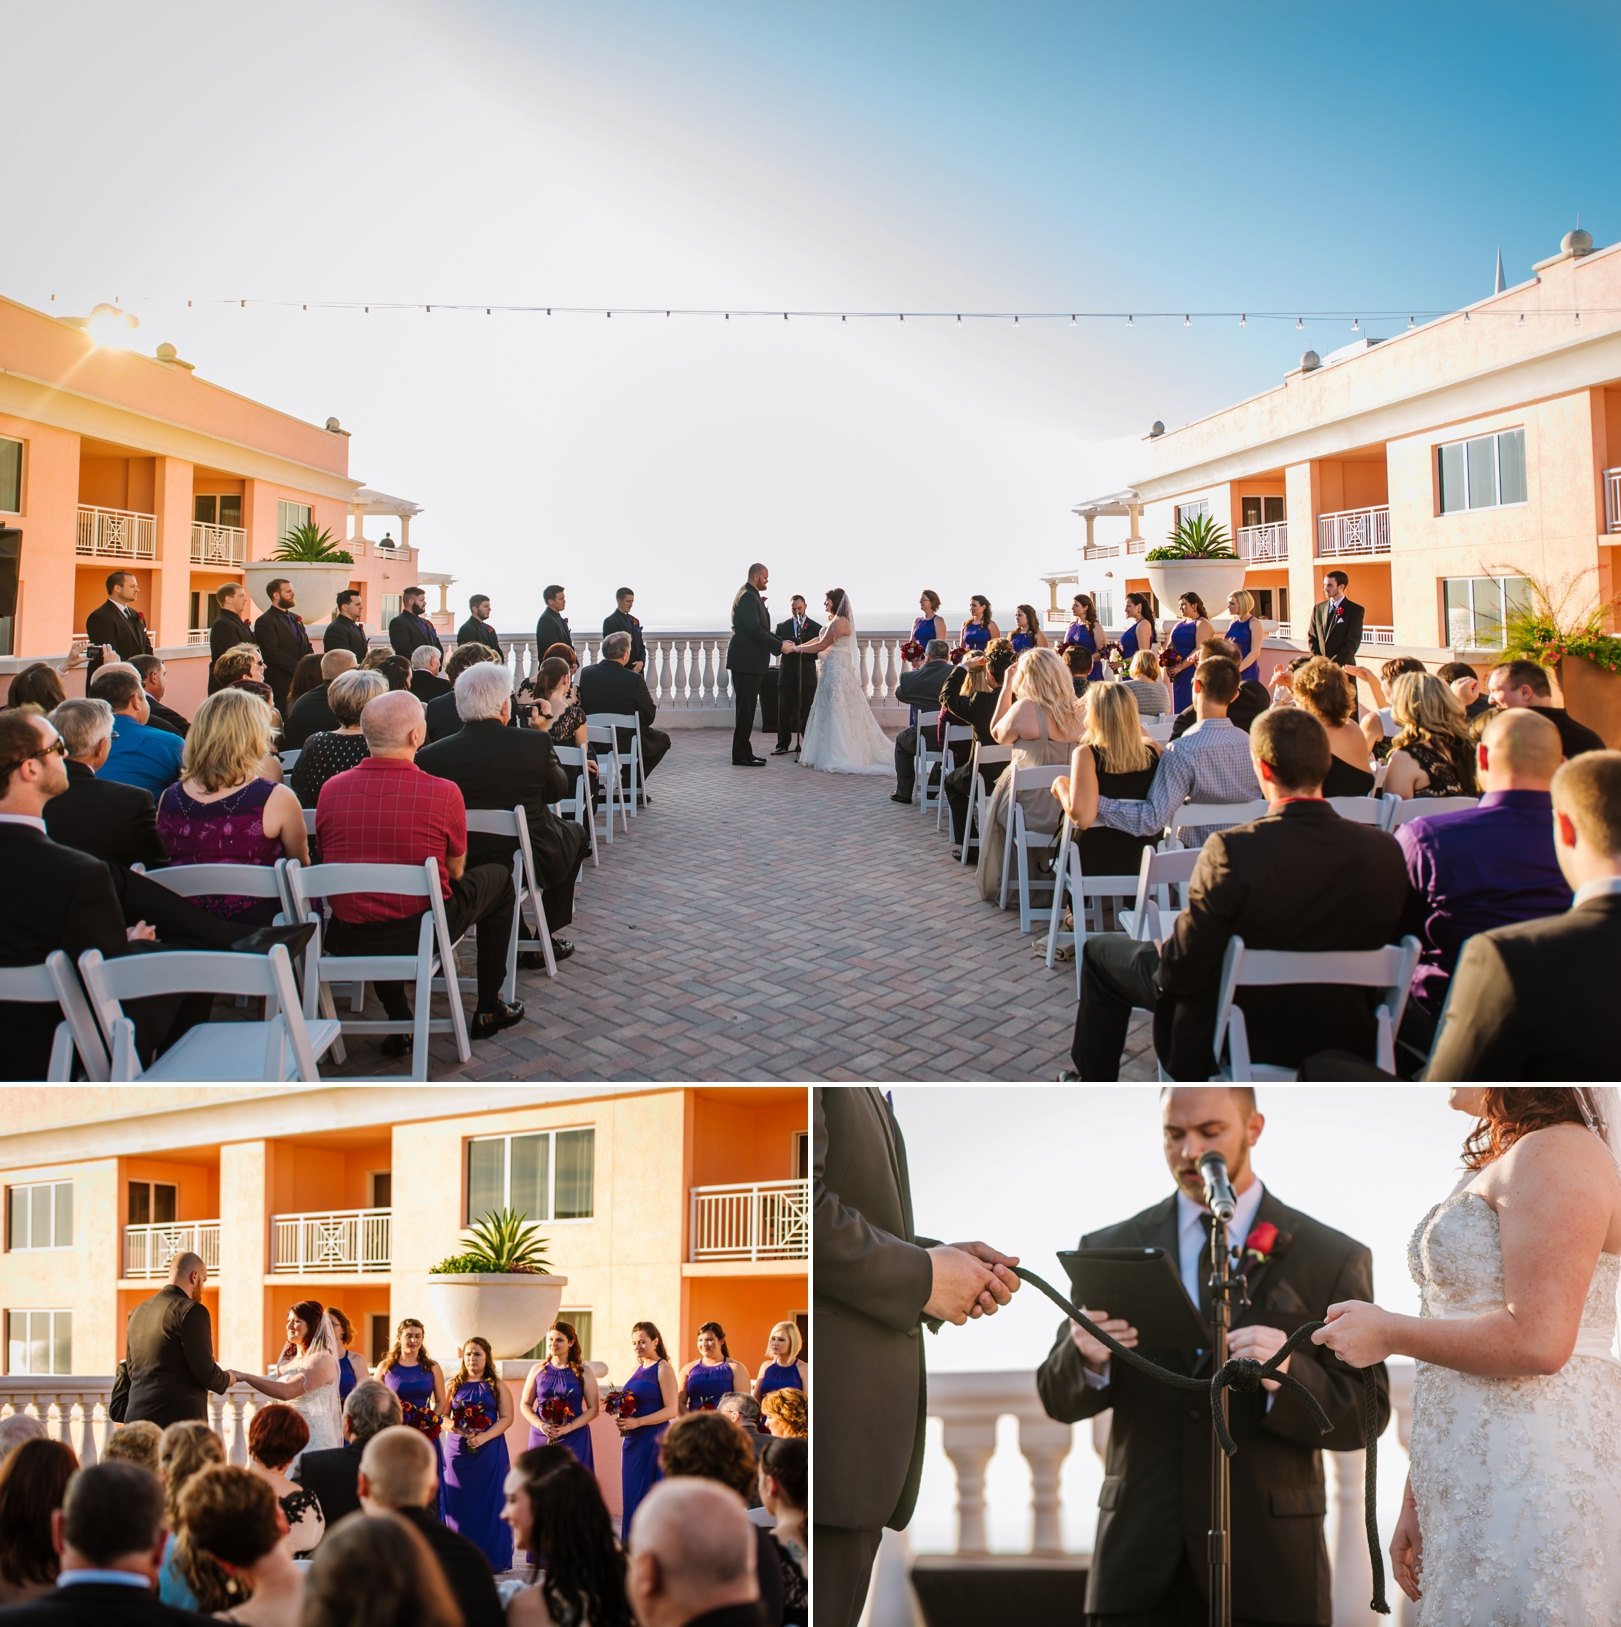 clearwater-beach-hyatt-masquerade-ballroom-themed-wedding-photograpy_0013.jpg